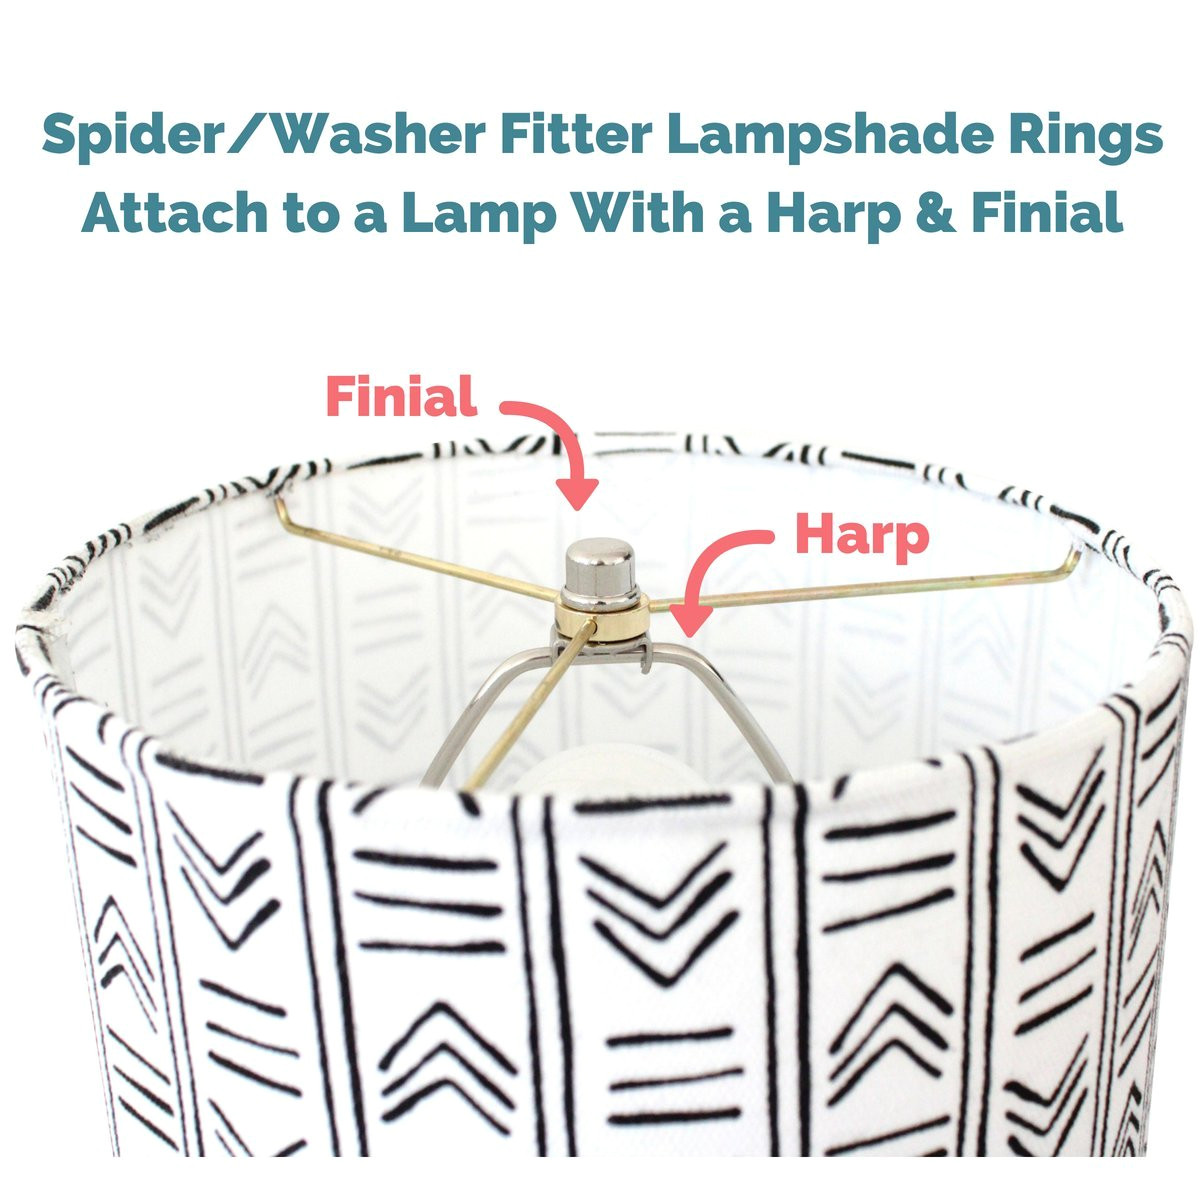 lamp shade ring set to make a diy drum ring lamp shade us style spider fitter that connects to lamp harps strong galvanized steel ring for lamp shade